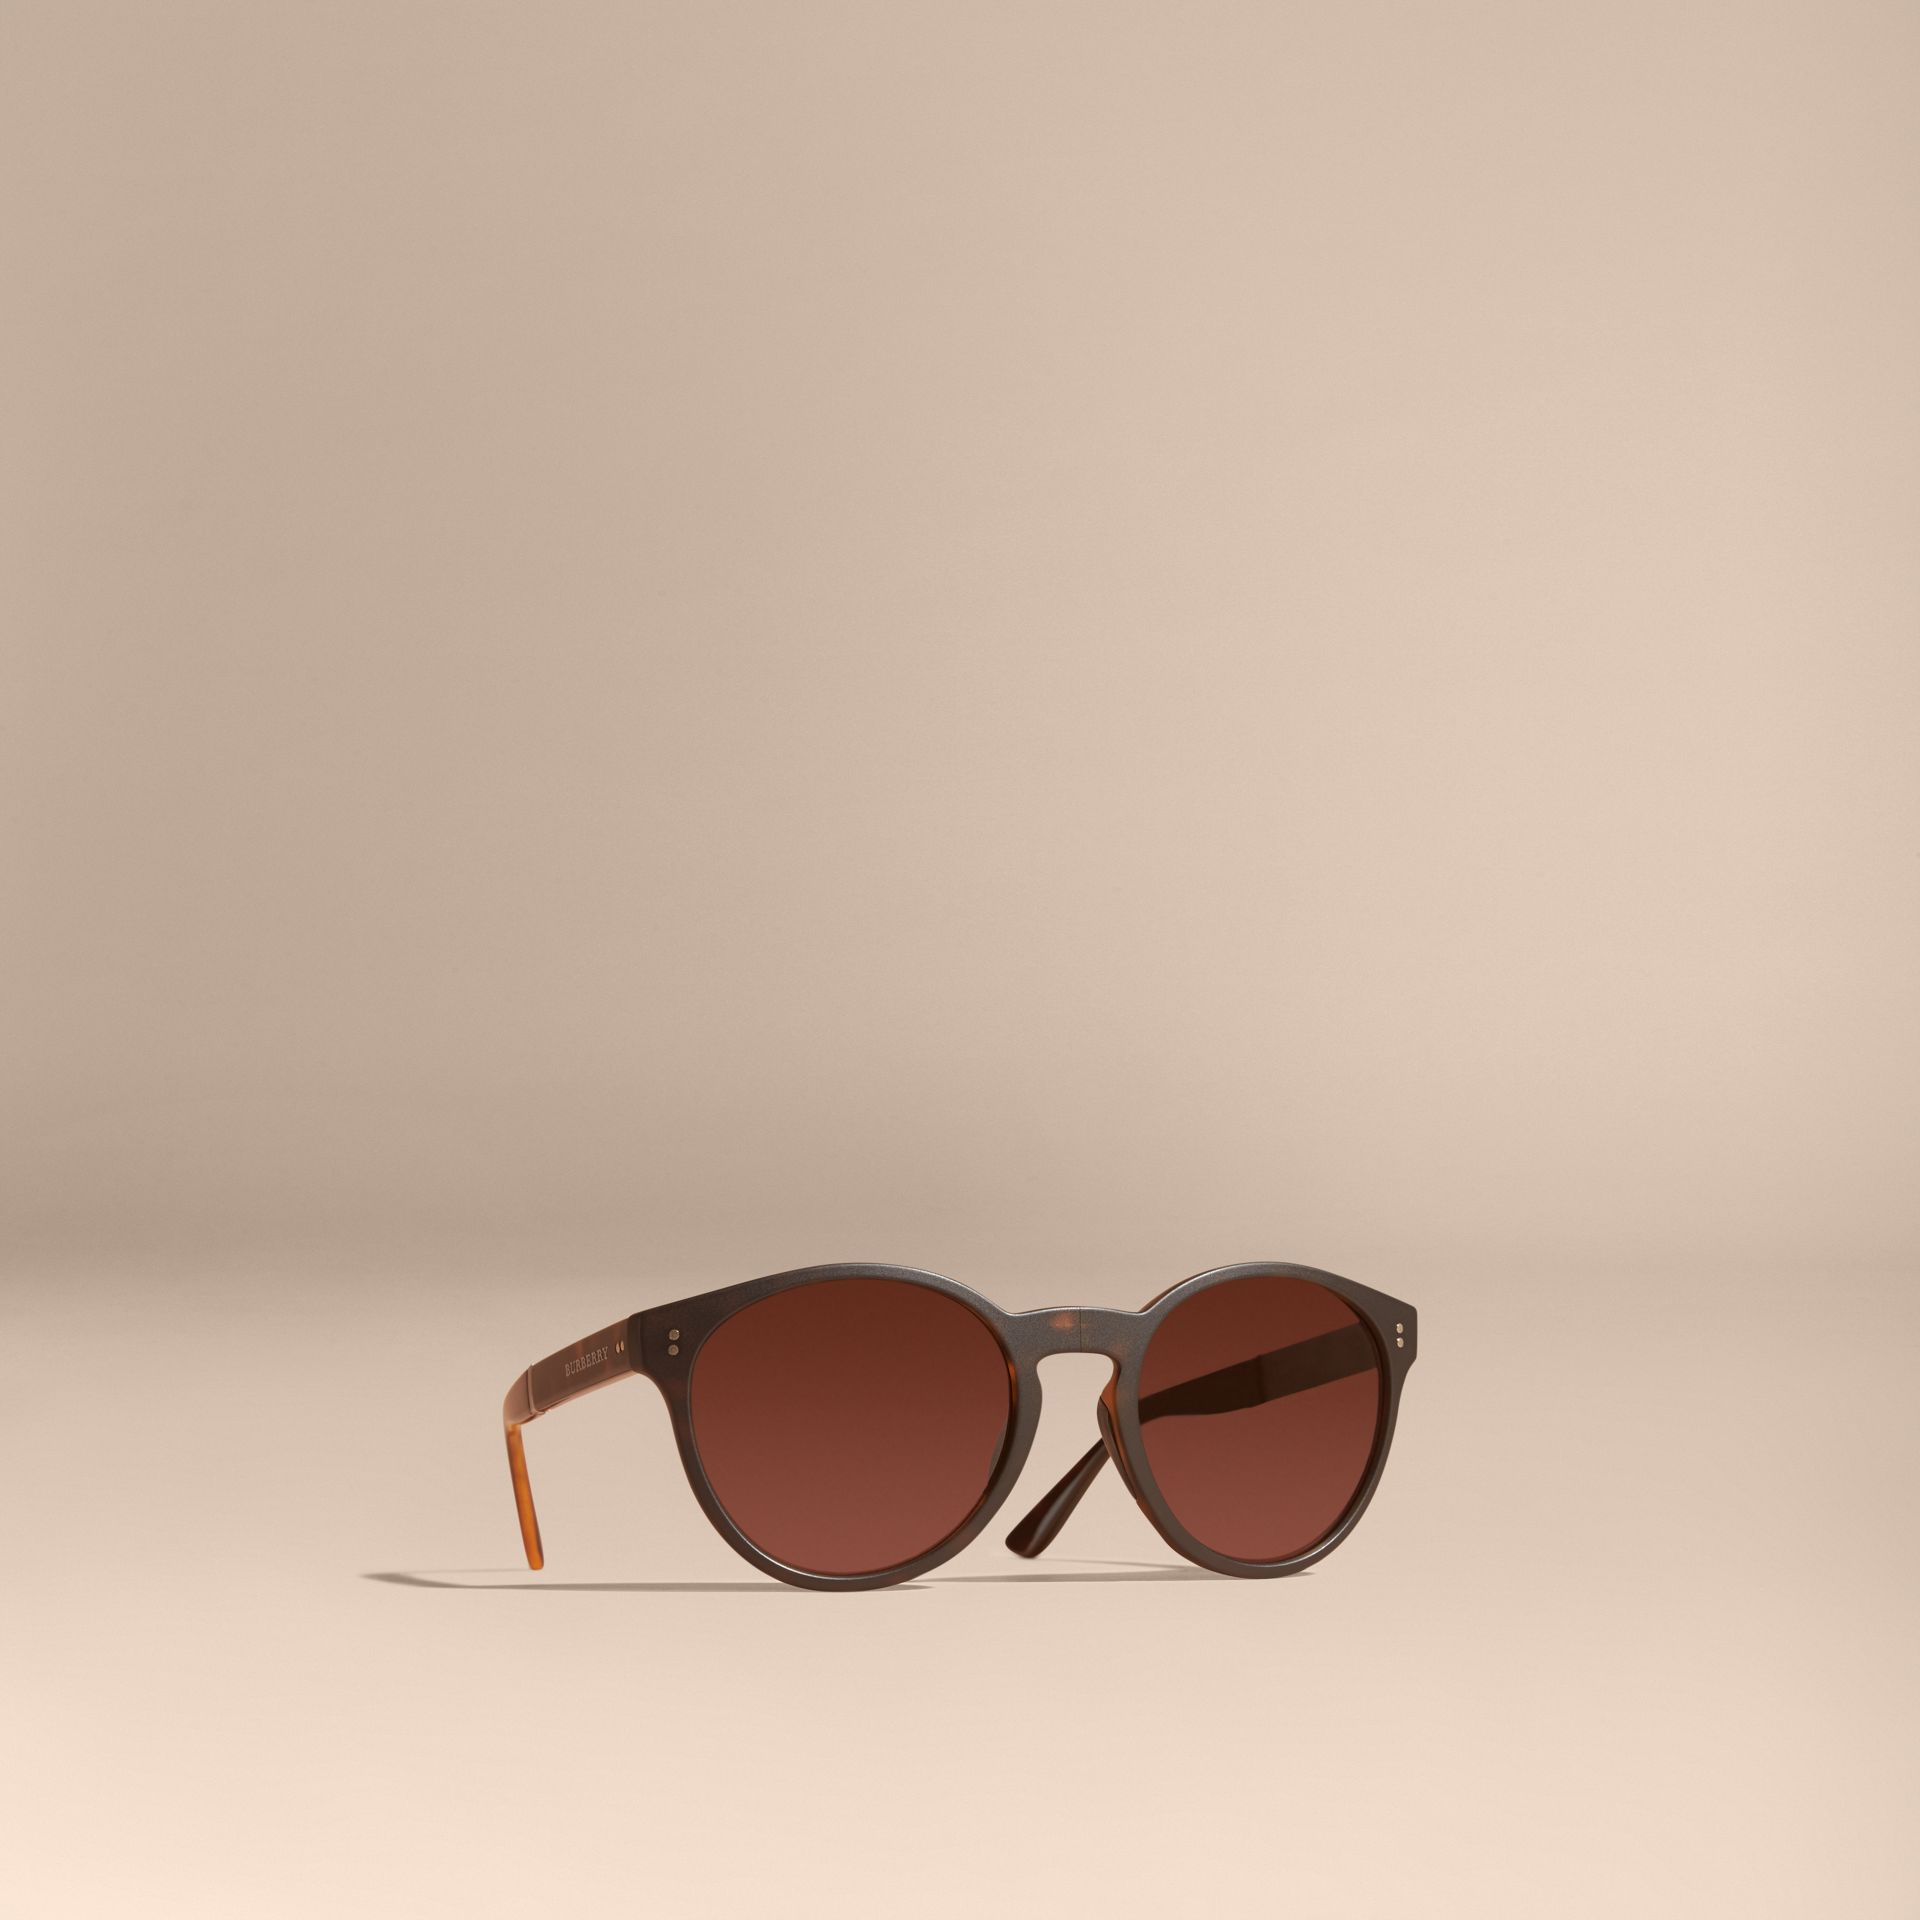 Folding Round Frame Sunglasses in Tortoise Shell - gallery image 1